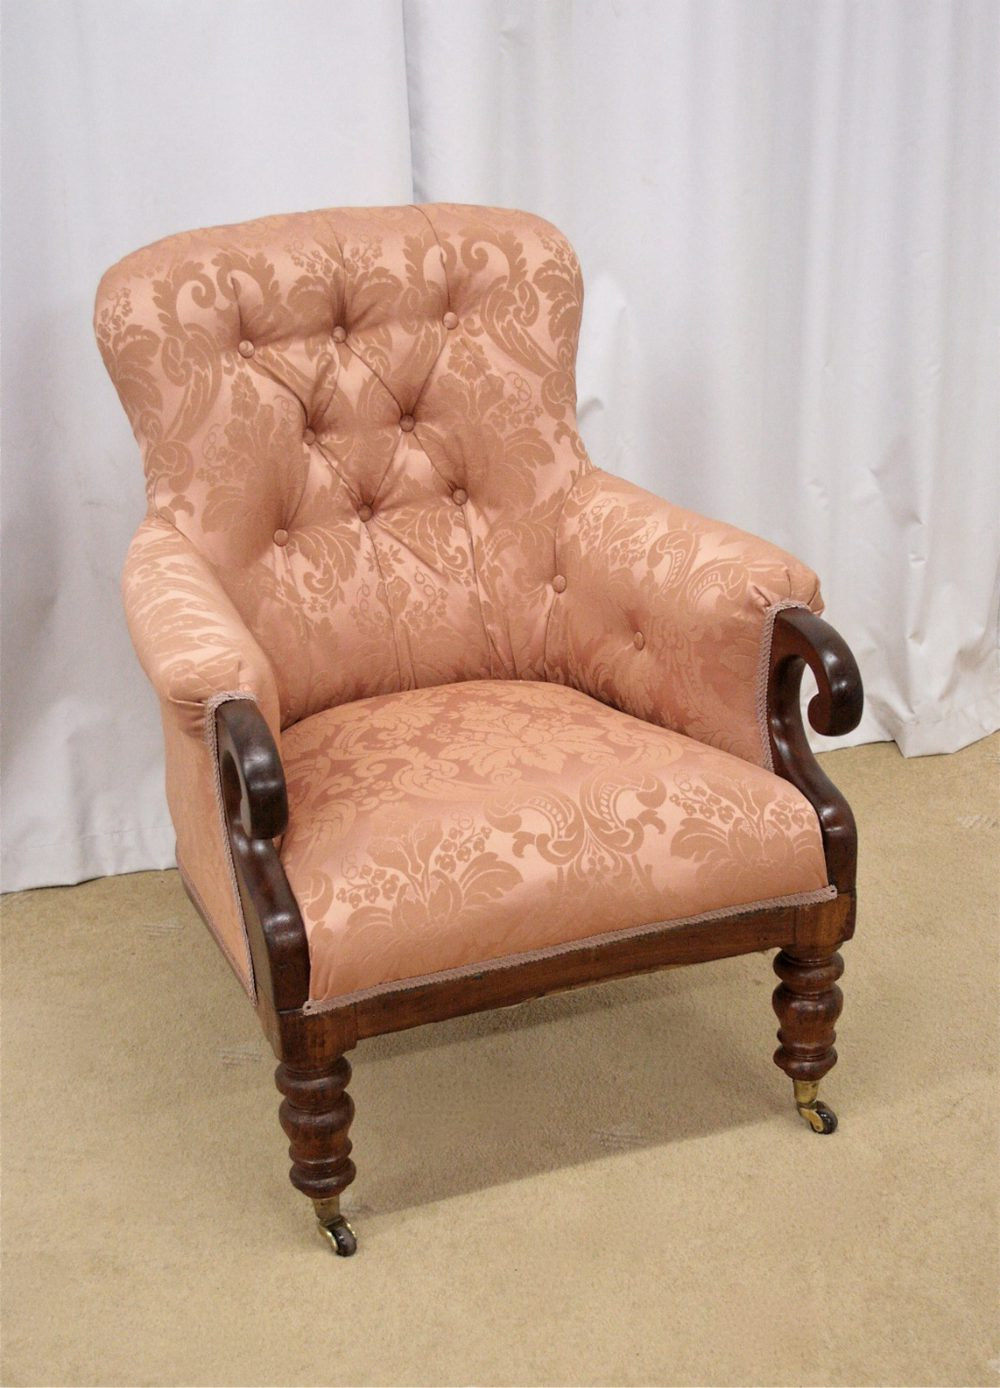 Victorian Spoon Back Chair - Antiques Atlas